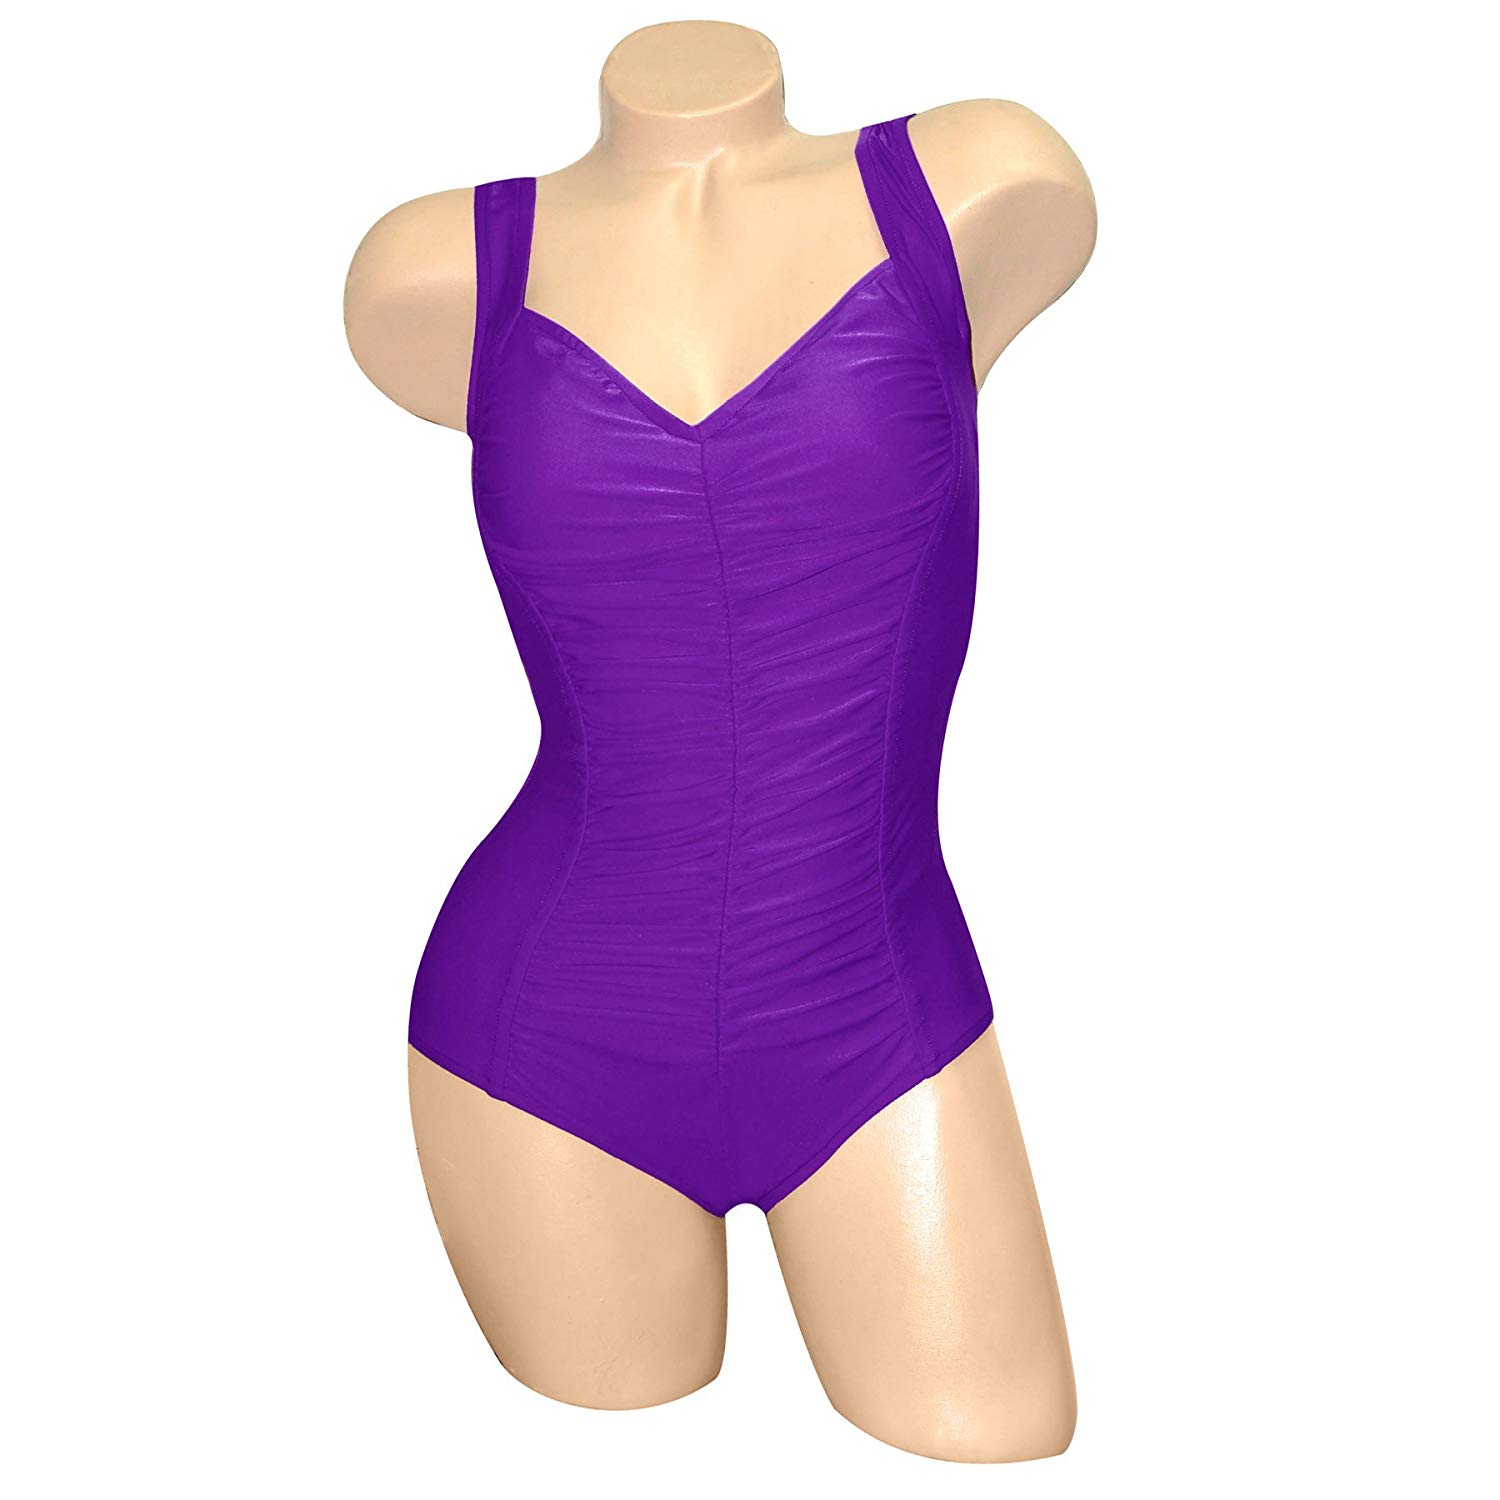 f34ad3dab87ef Get Quotations · Carol Wior A110P Purple Shirred Hourglass Swimsuit with  Control